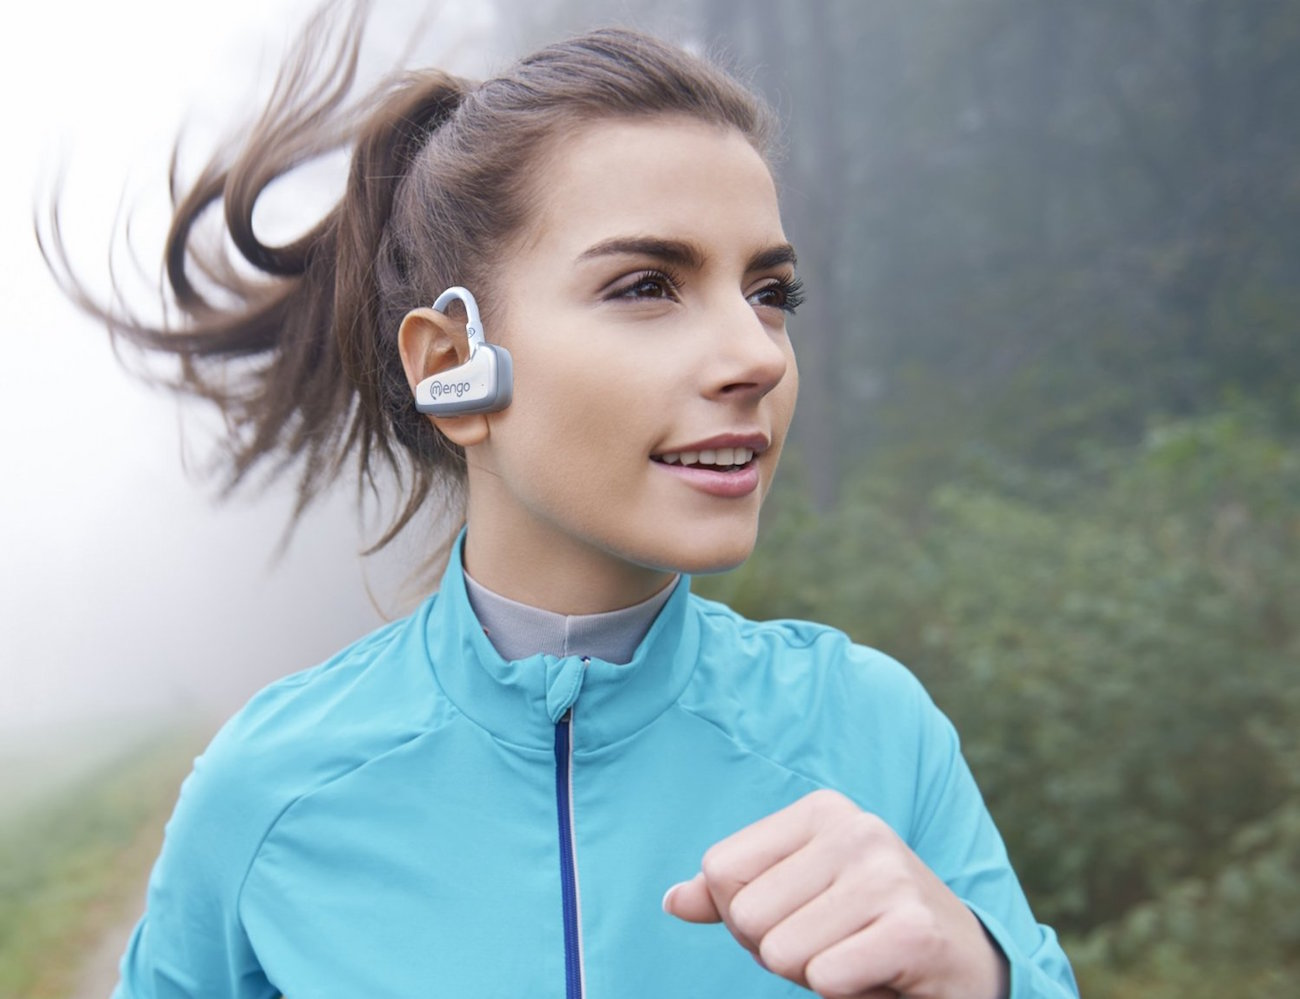 Mengo+Bumps+Sport+Wireless+Headphones